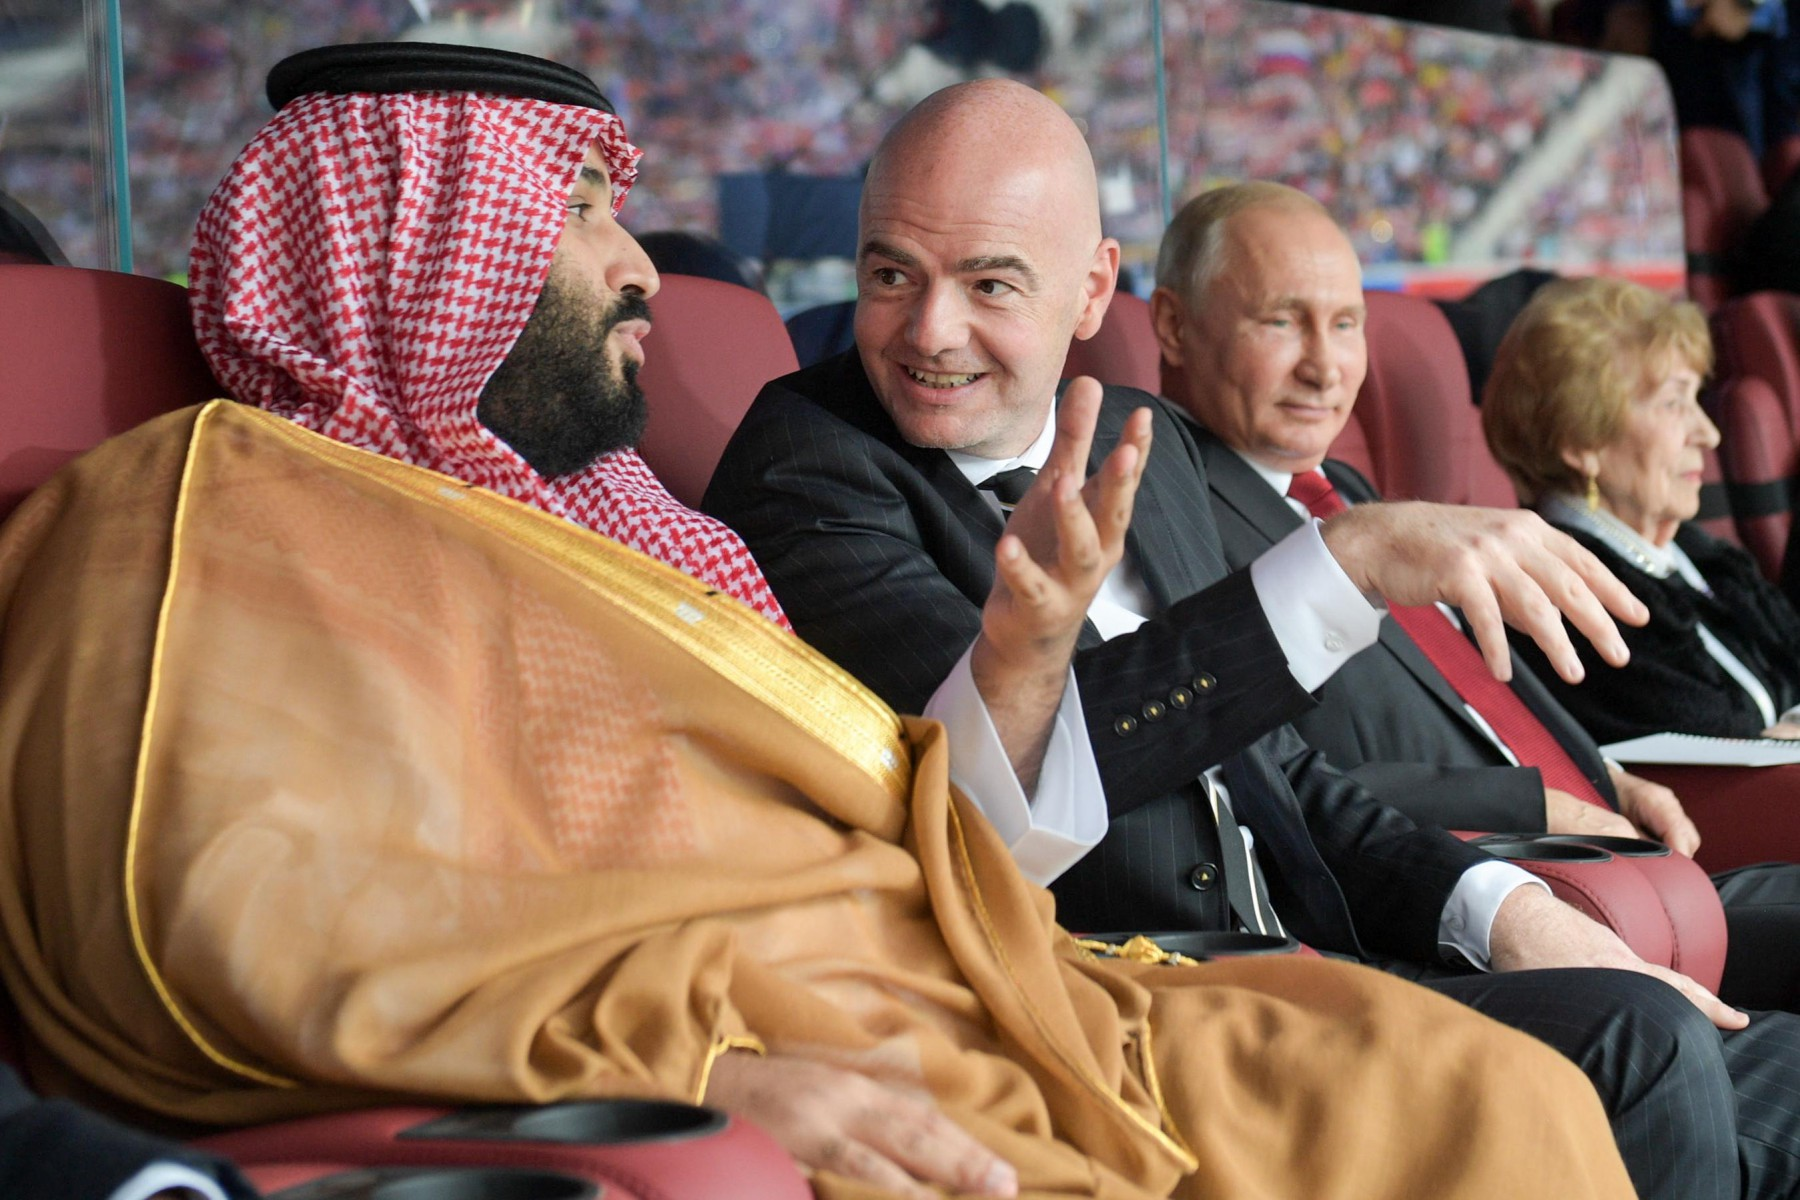 Football fan Mohammad bin Salman owns the world's most expensive home